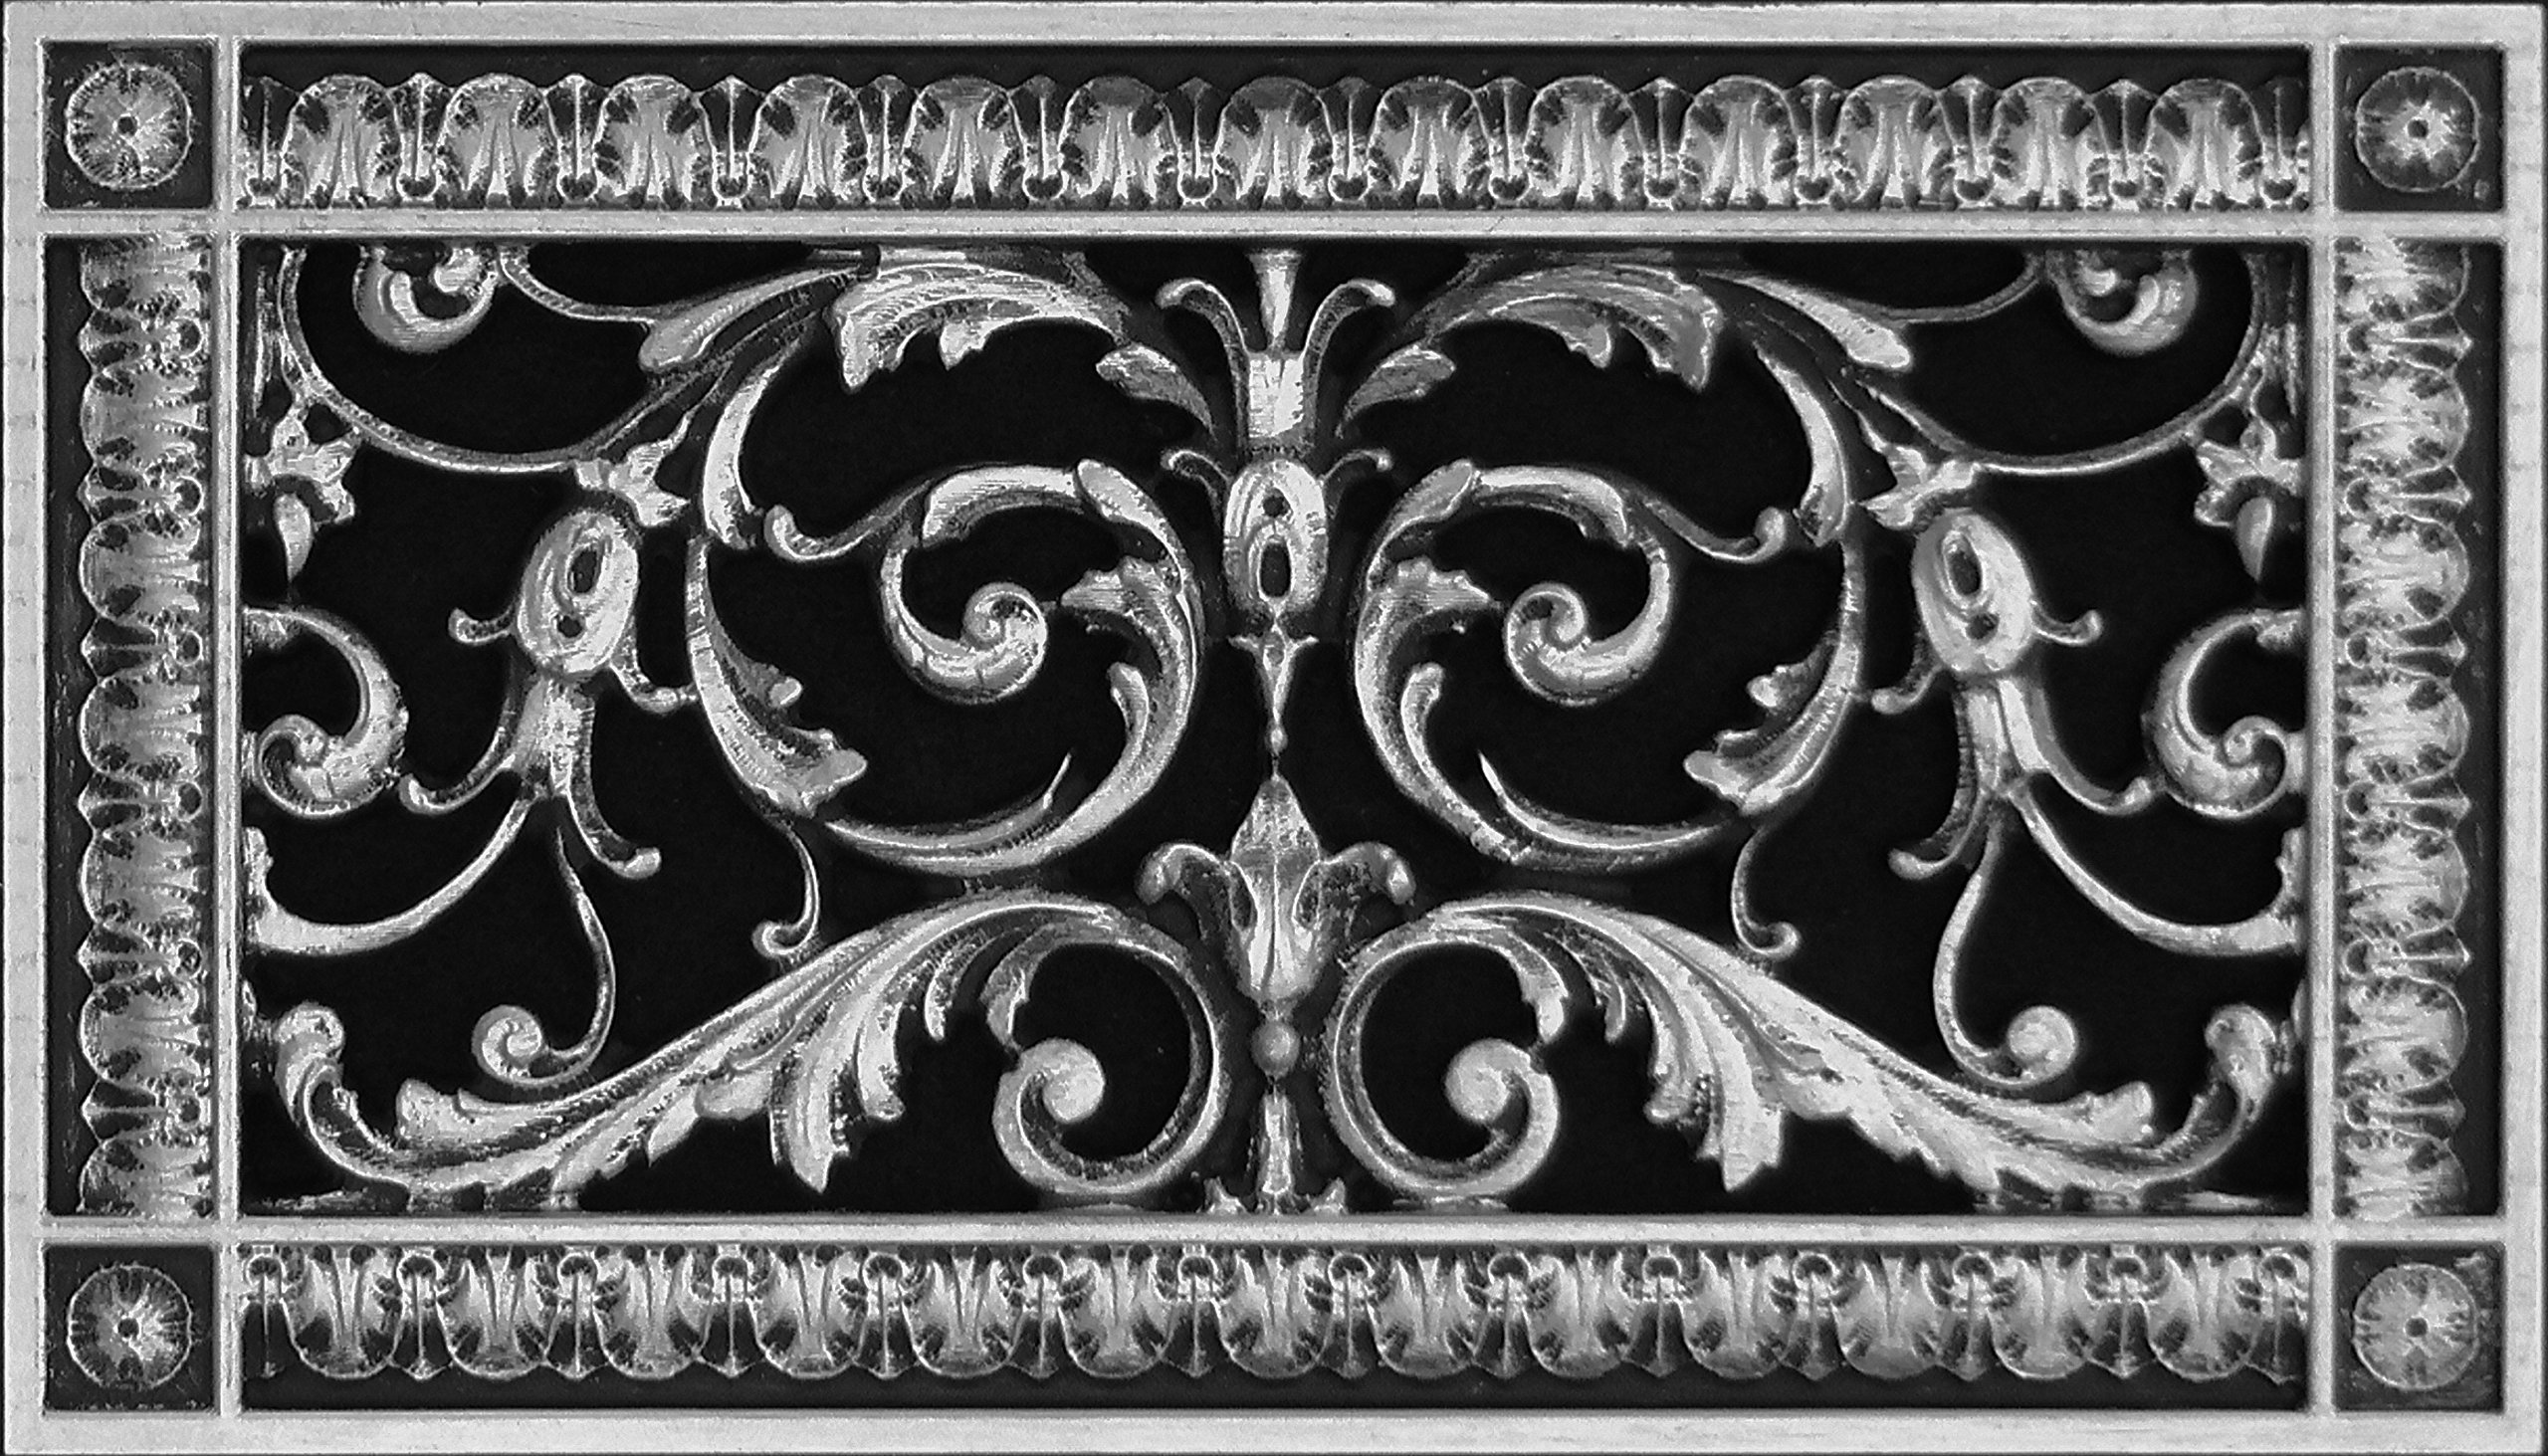 """Decorative Vent Cover, Grille, made of Urethane Resin in Louis XIV, French style fits over a 6"""" x 12"""", Total size, 8"""" by 14"""", for wall & ceiling installation only. (not for floors) (Pewter)"""